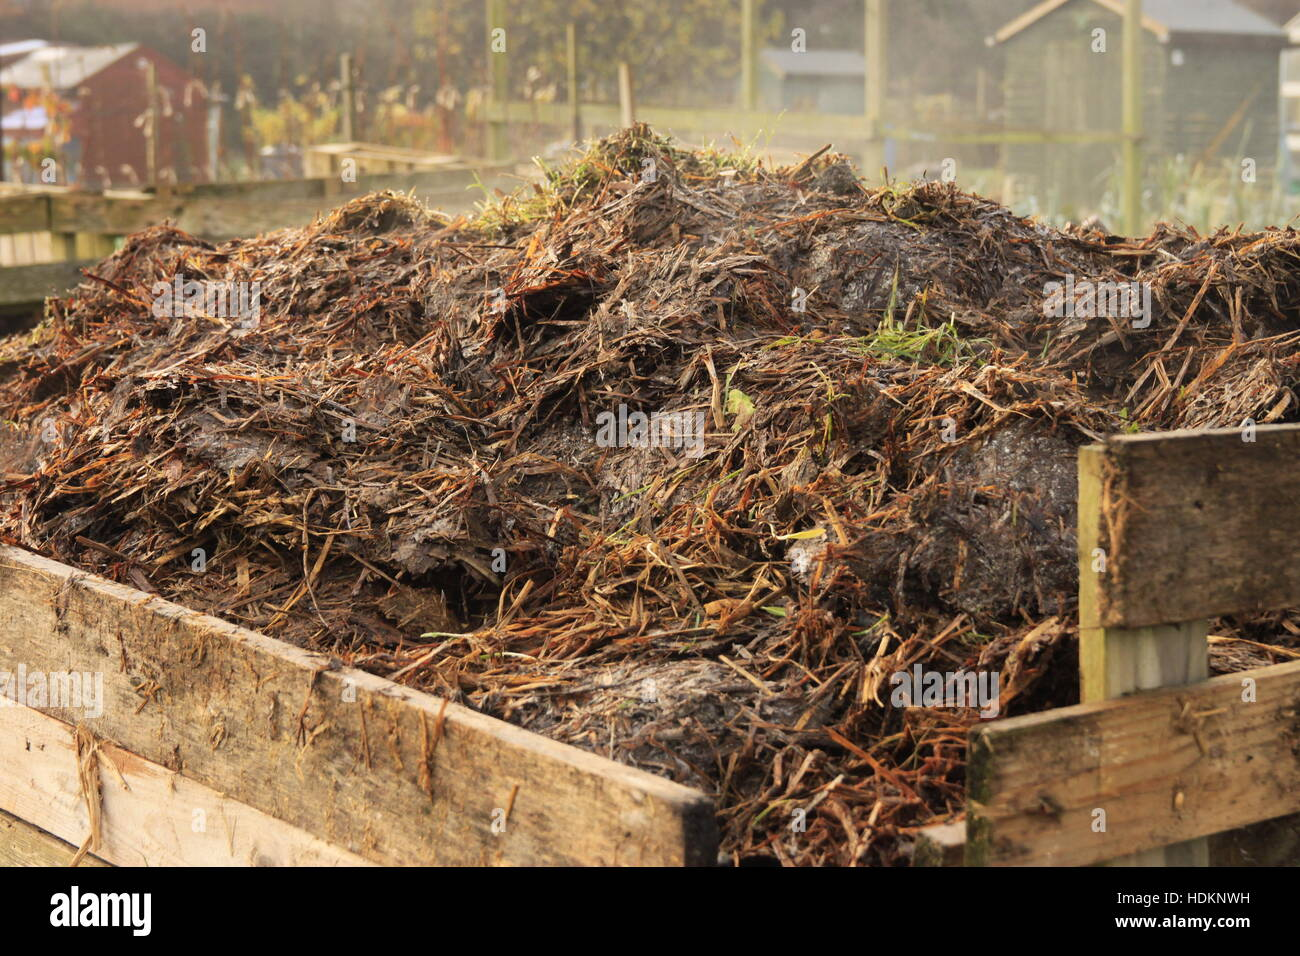 High Quality Steaming Horse Manure In Compost Bin On Allotment Garden   Organic Soil  Improver Fertilizer Beverley, Yorkshire Images